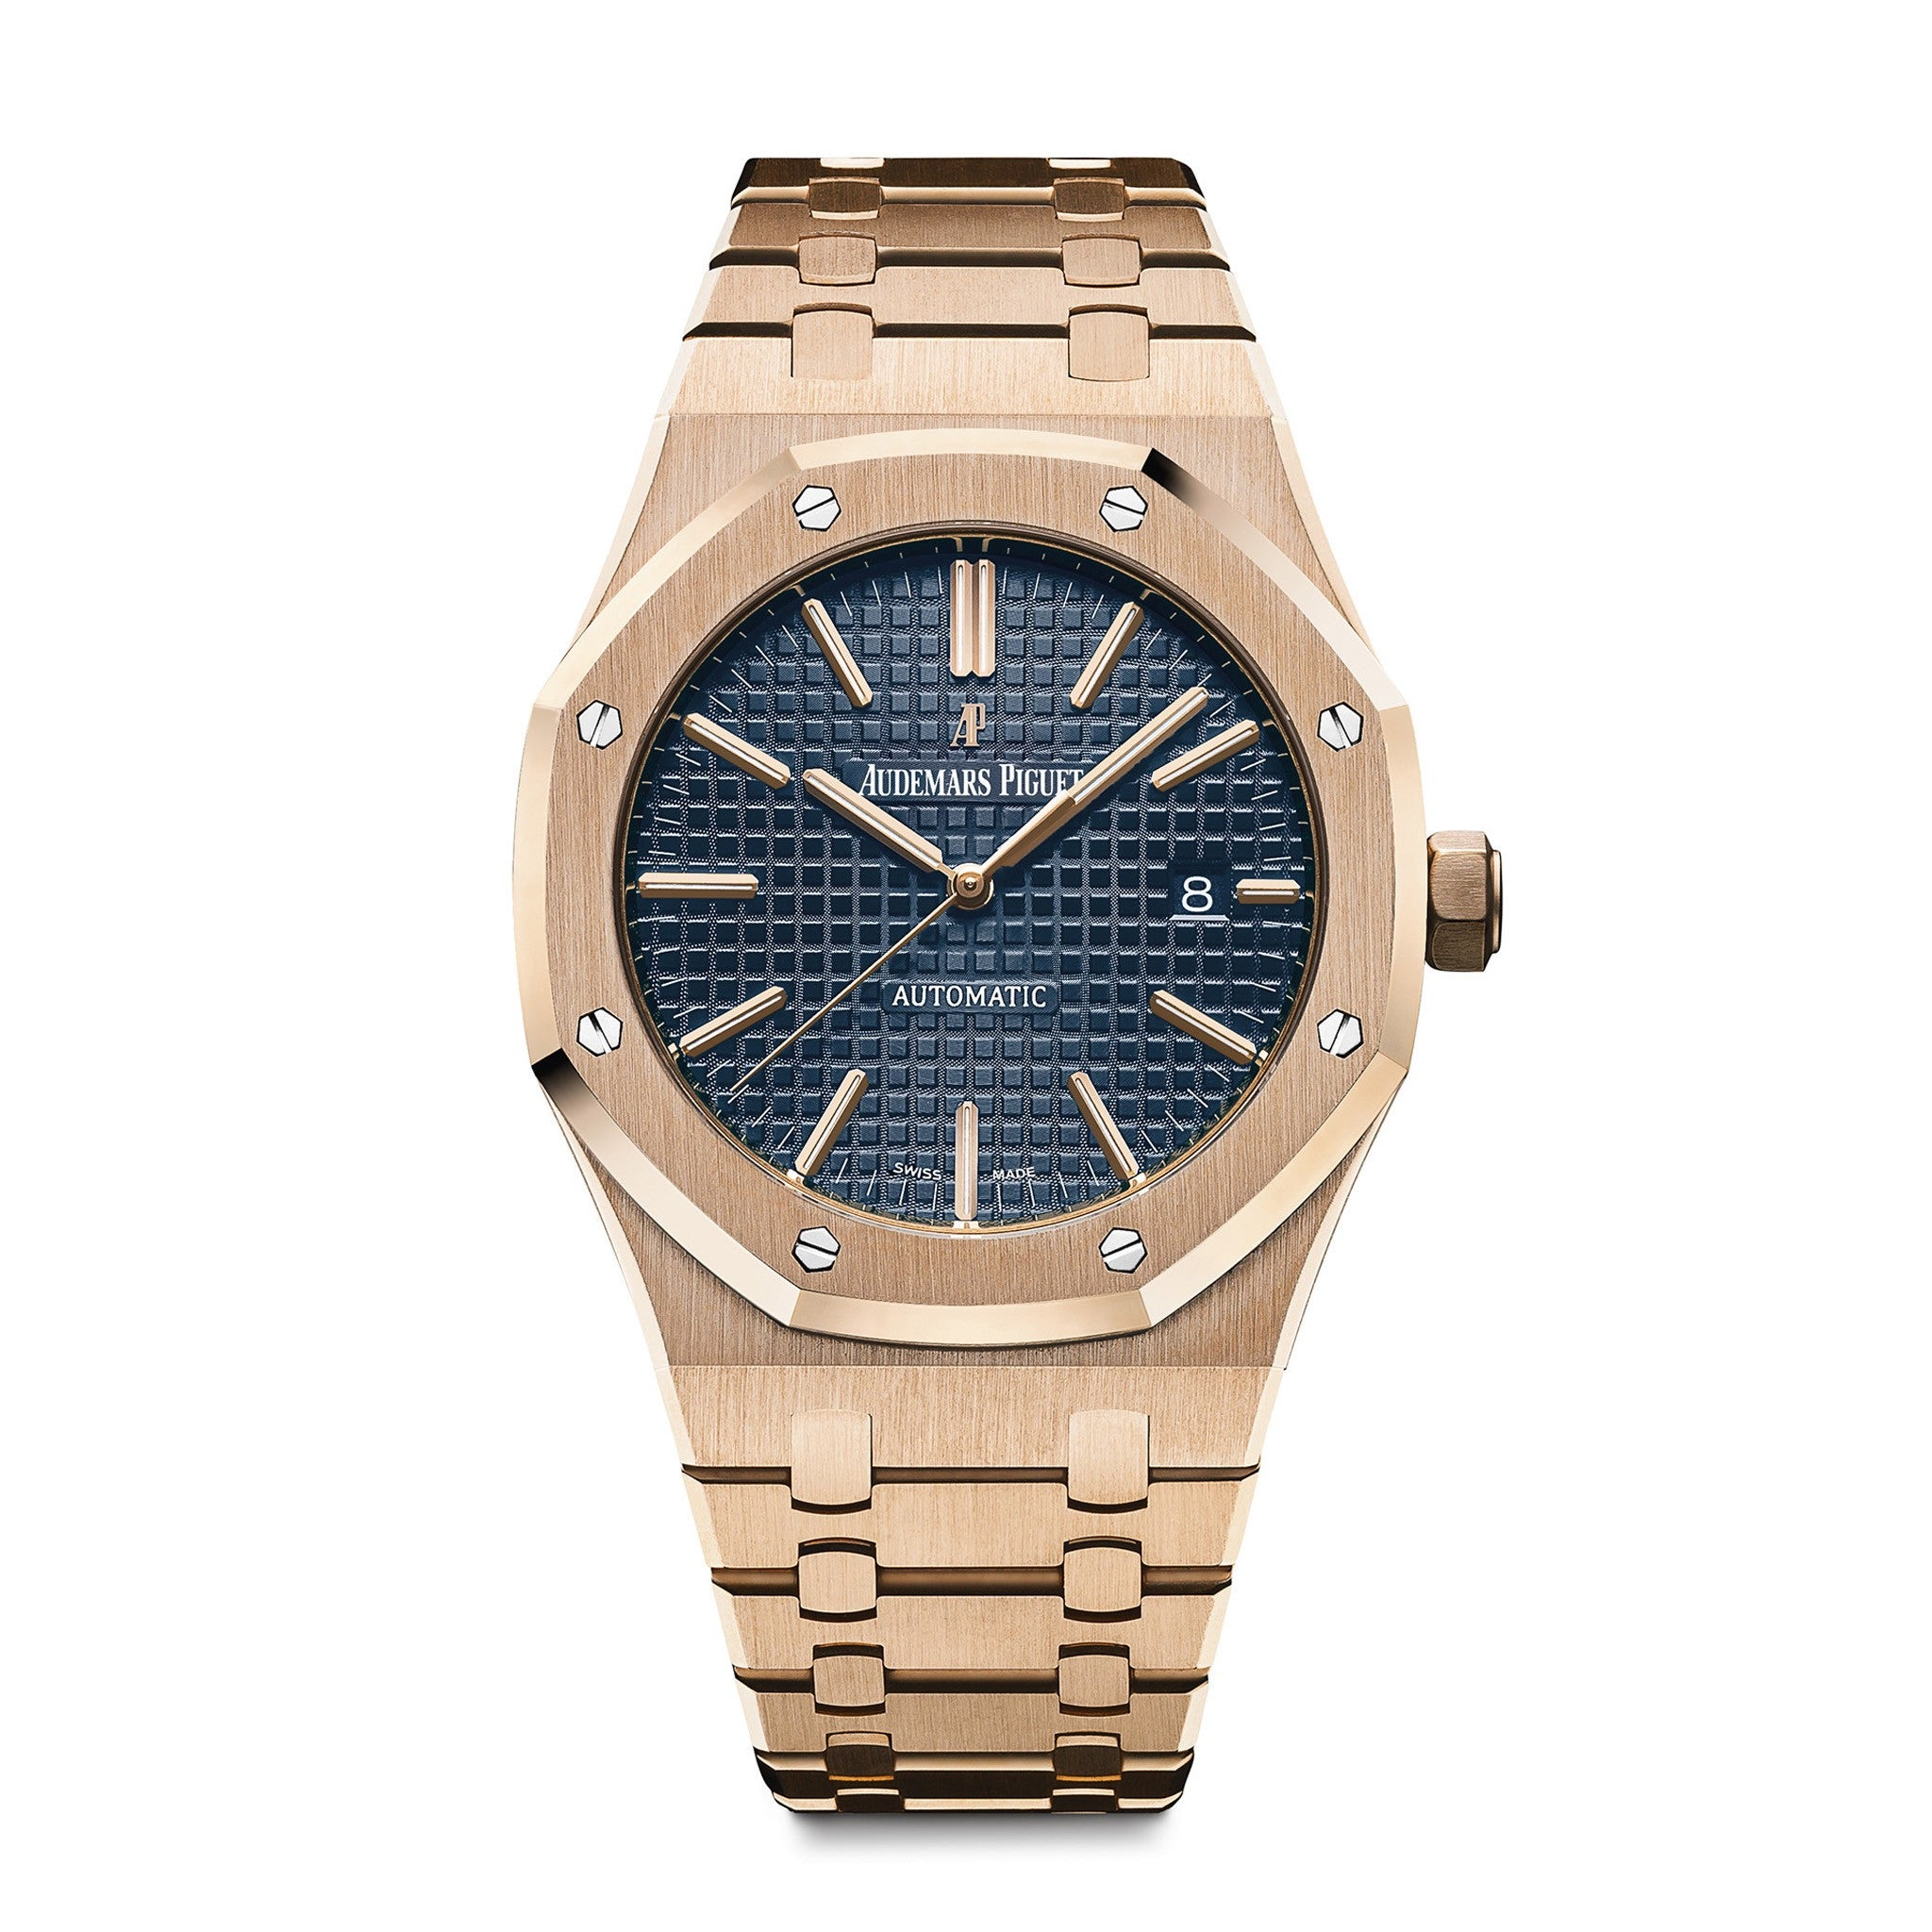 Royal Oak Selfwinding 15400OR.OO.1220OR.03 - Audemars Piguet